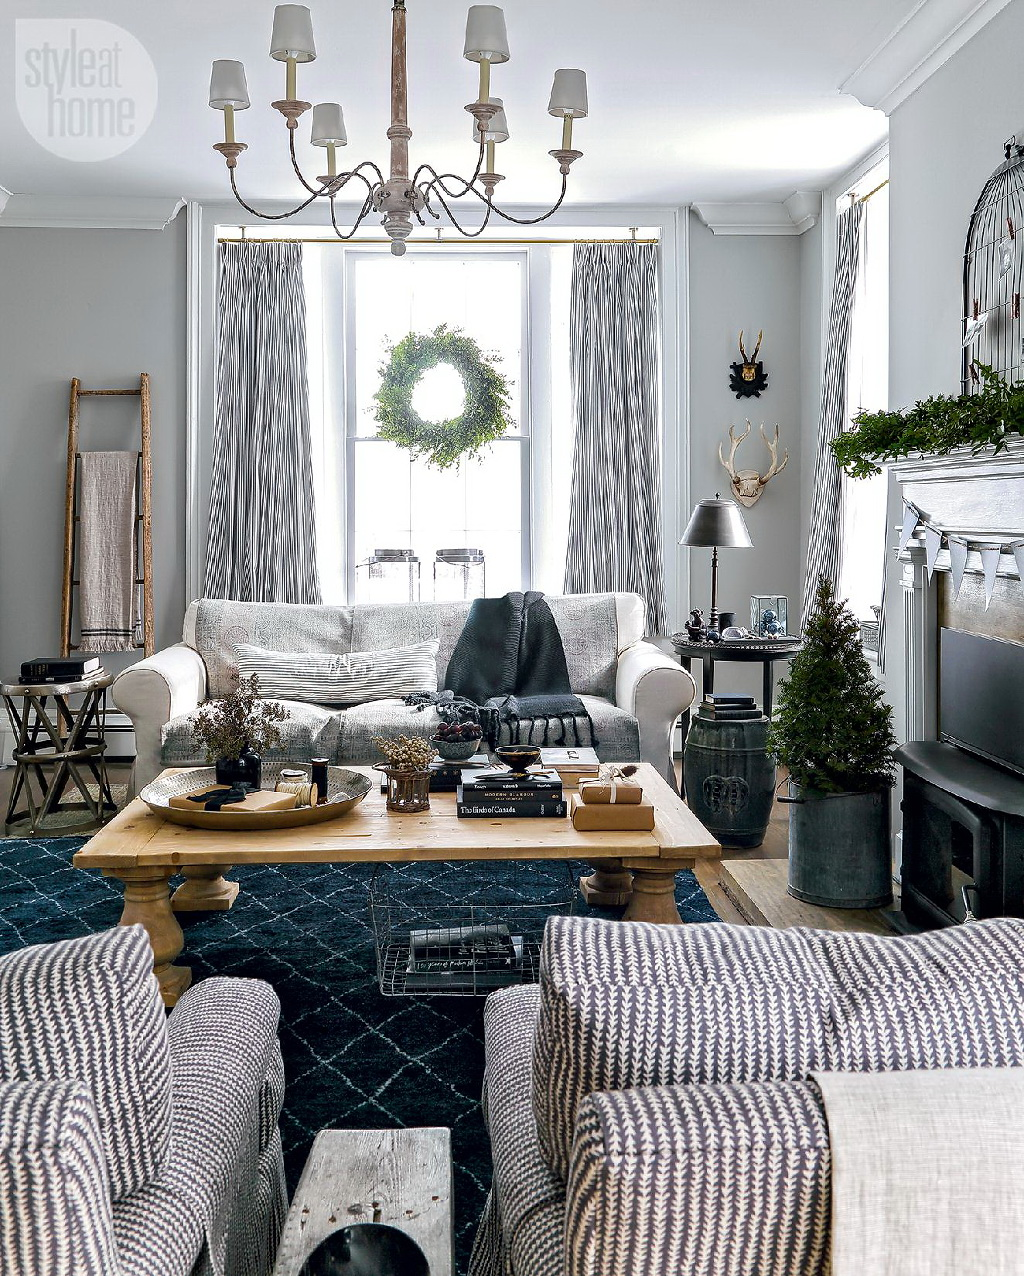 Style At Home Rustic Nordic holiday style 1